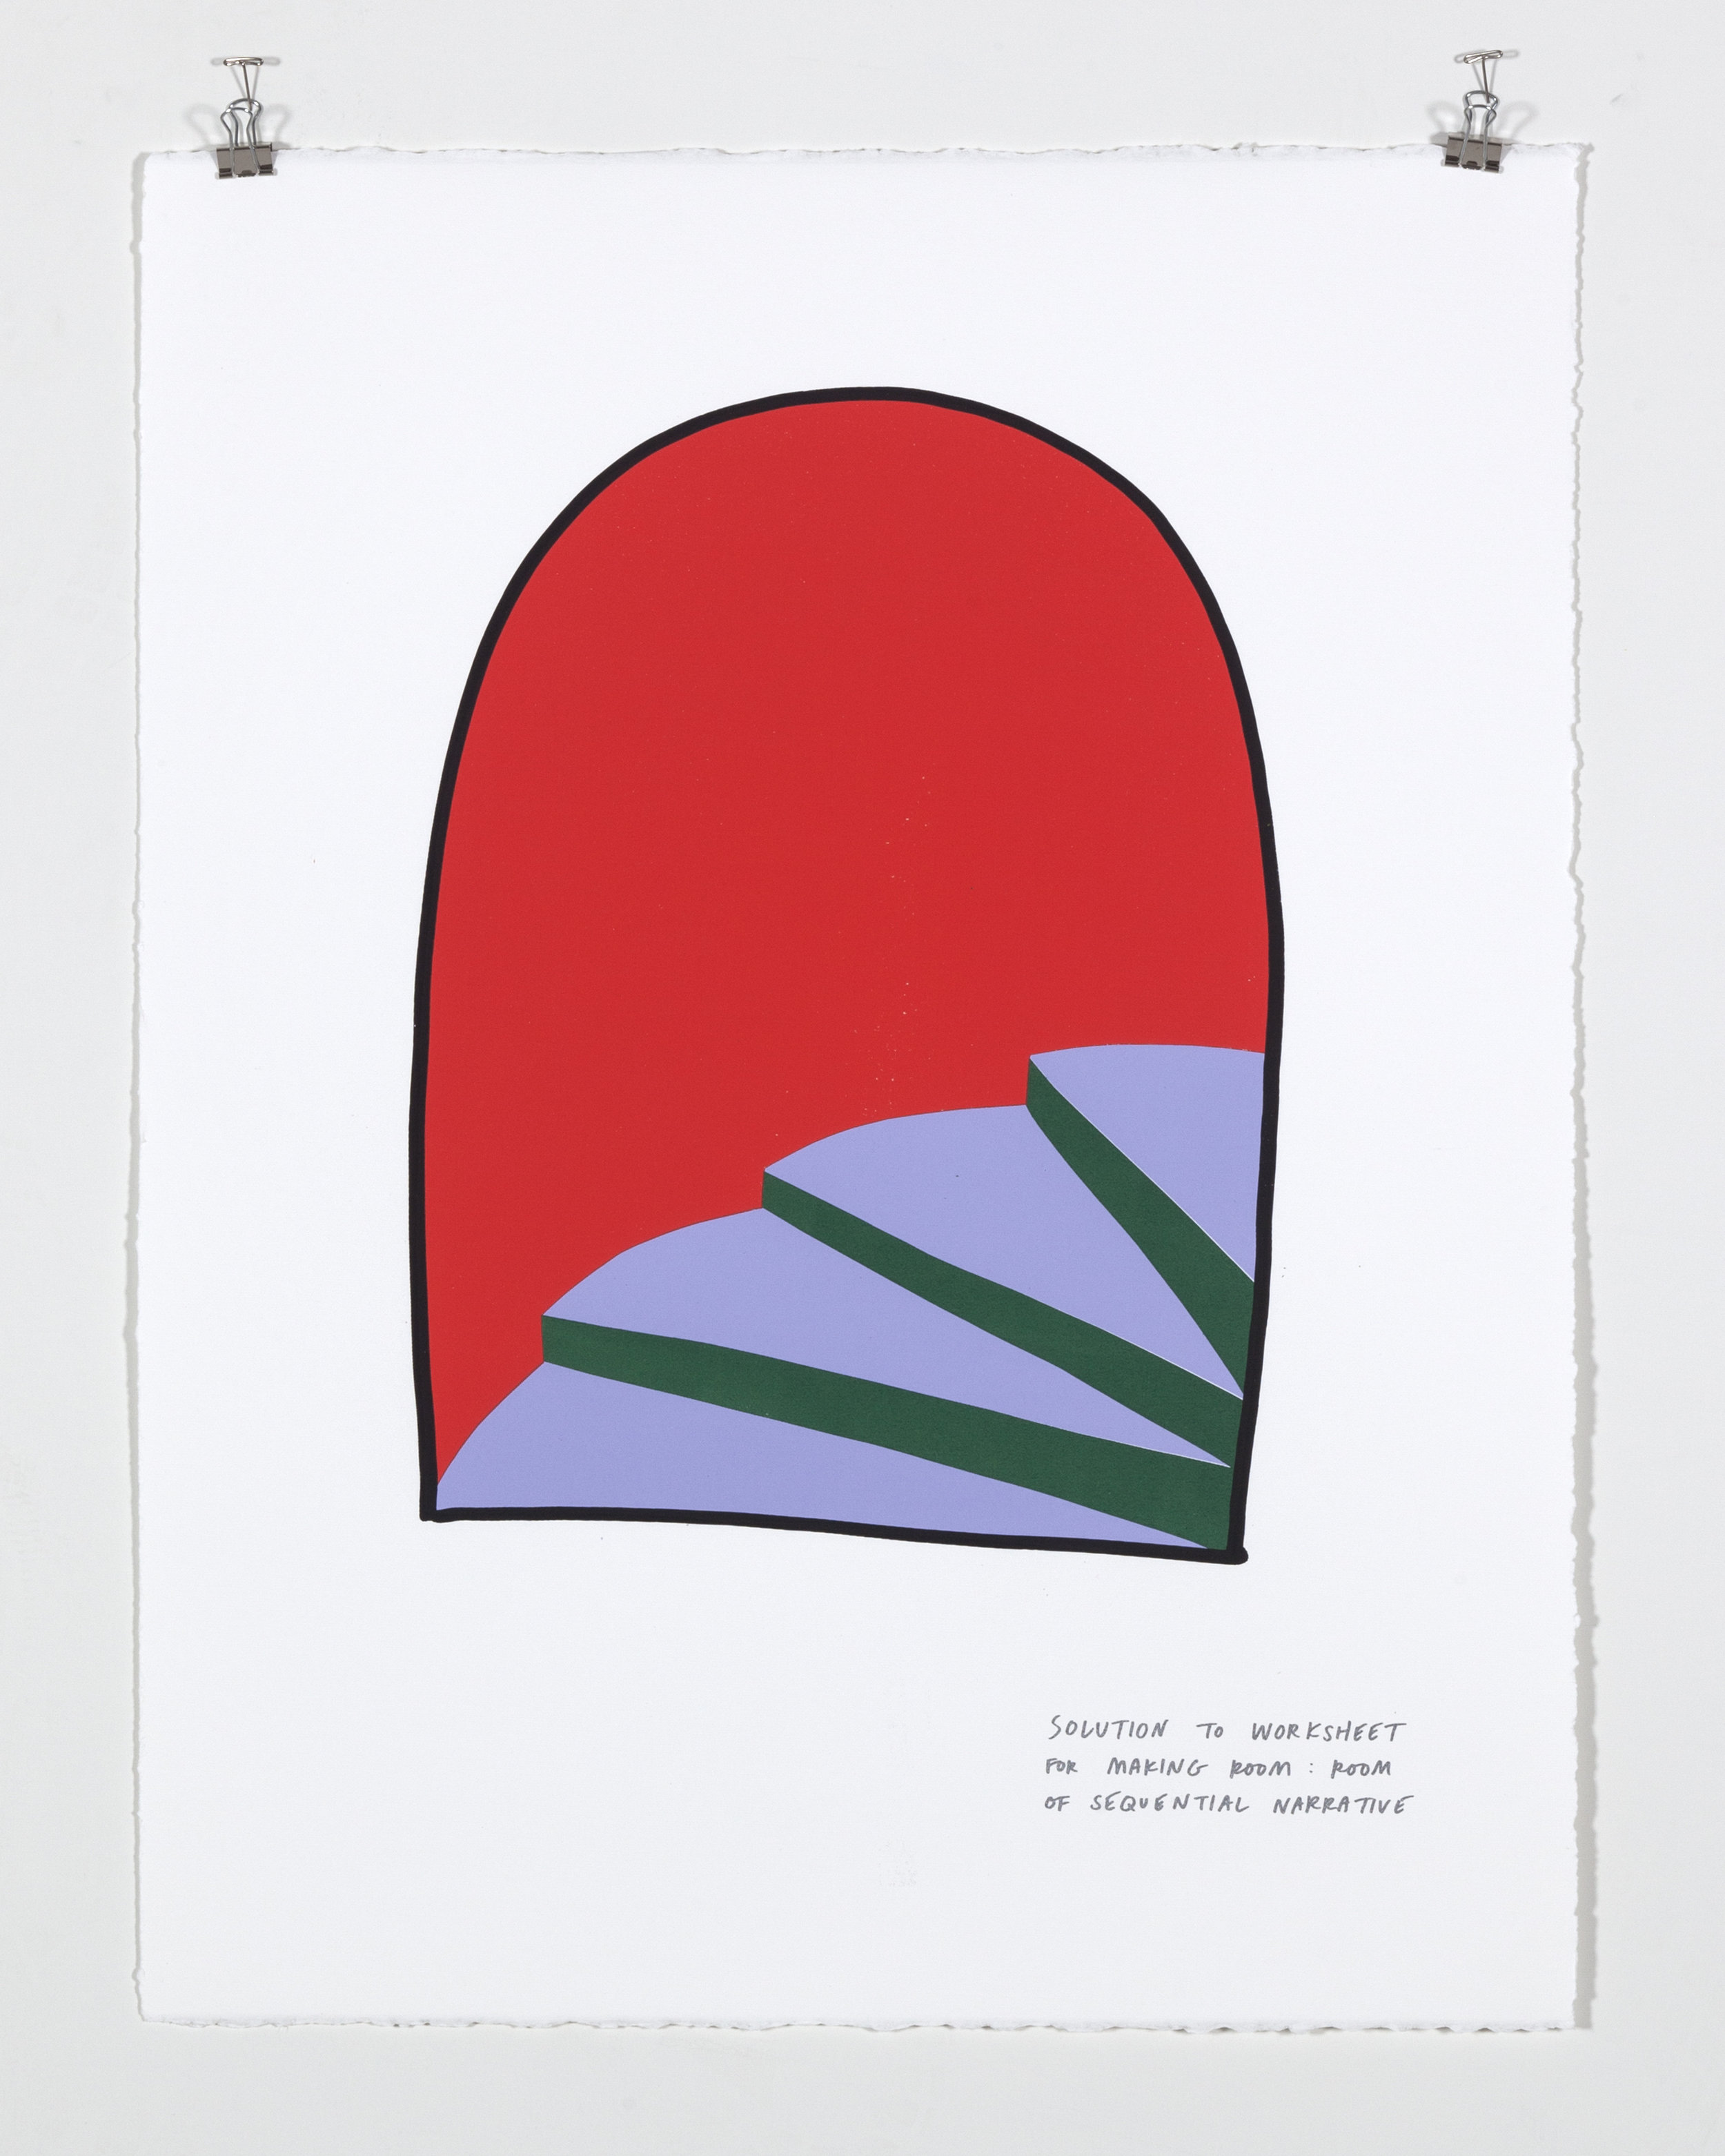 Solution to Worksheet for Making Room: Room of Sequential Narrative,  2018  Five color silkscreen print on paper 19 7/8 x 25 7/8 inches